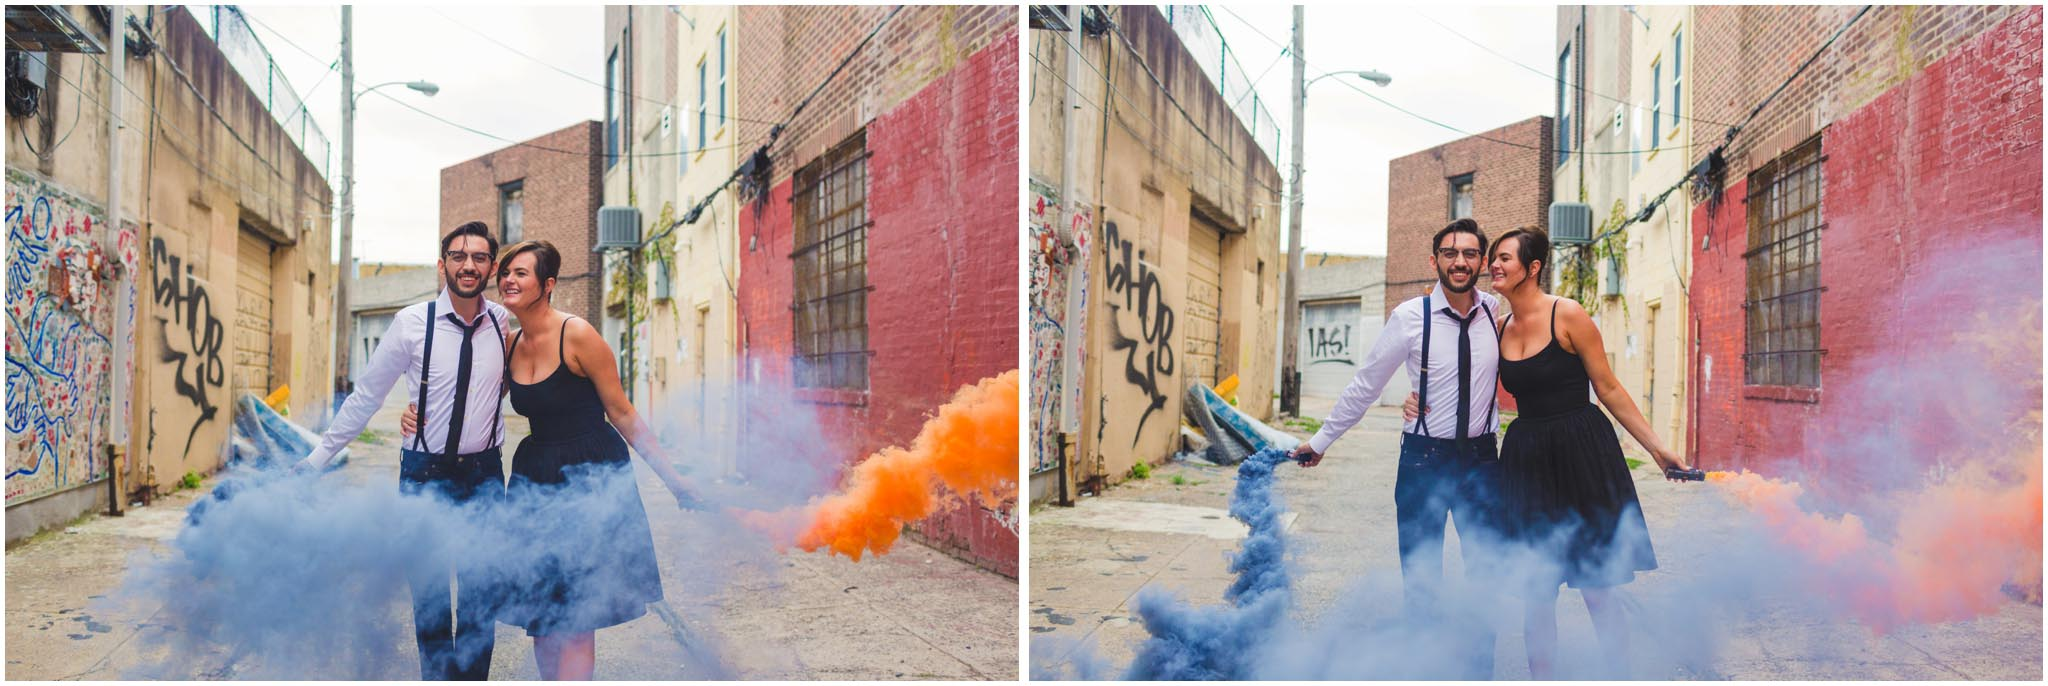 smoke bomb, engagement, smoke grenade, Philadelphia